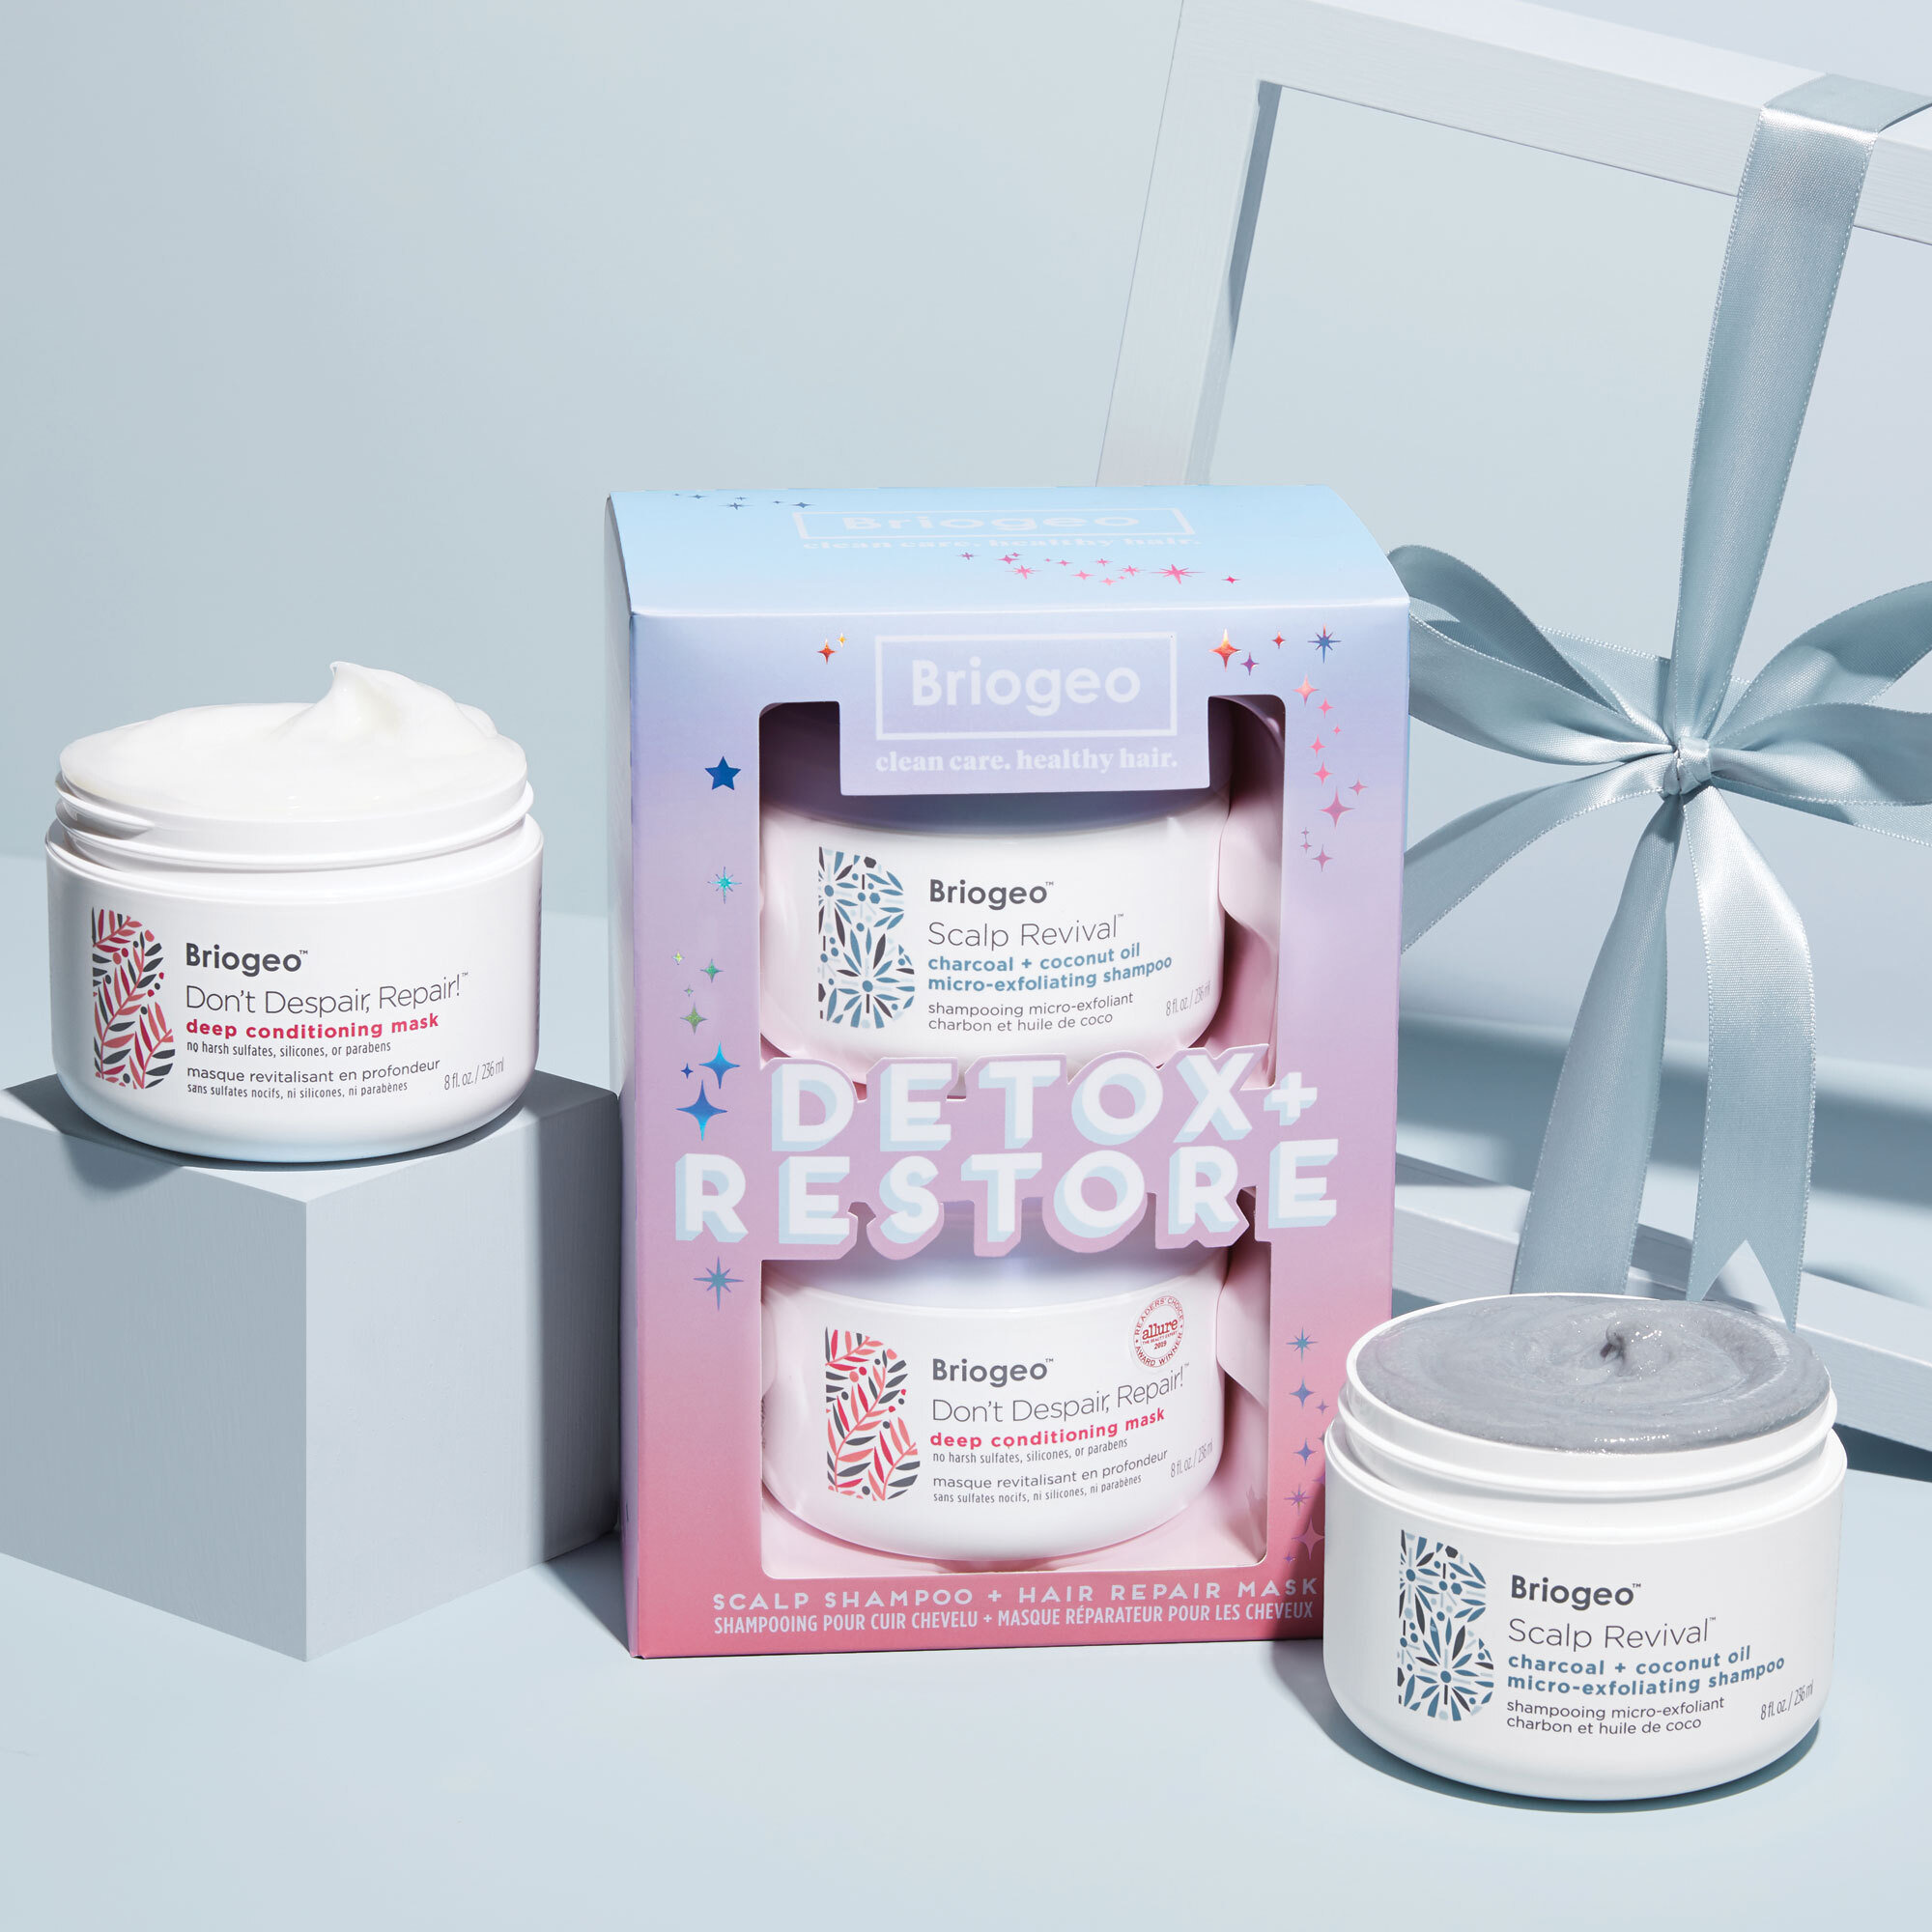 Alternate product image for Detox and Restore Set shown with the description.